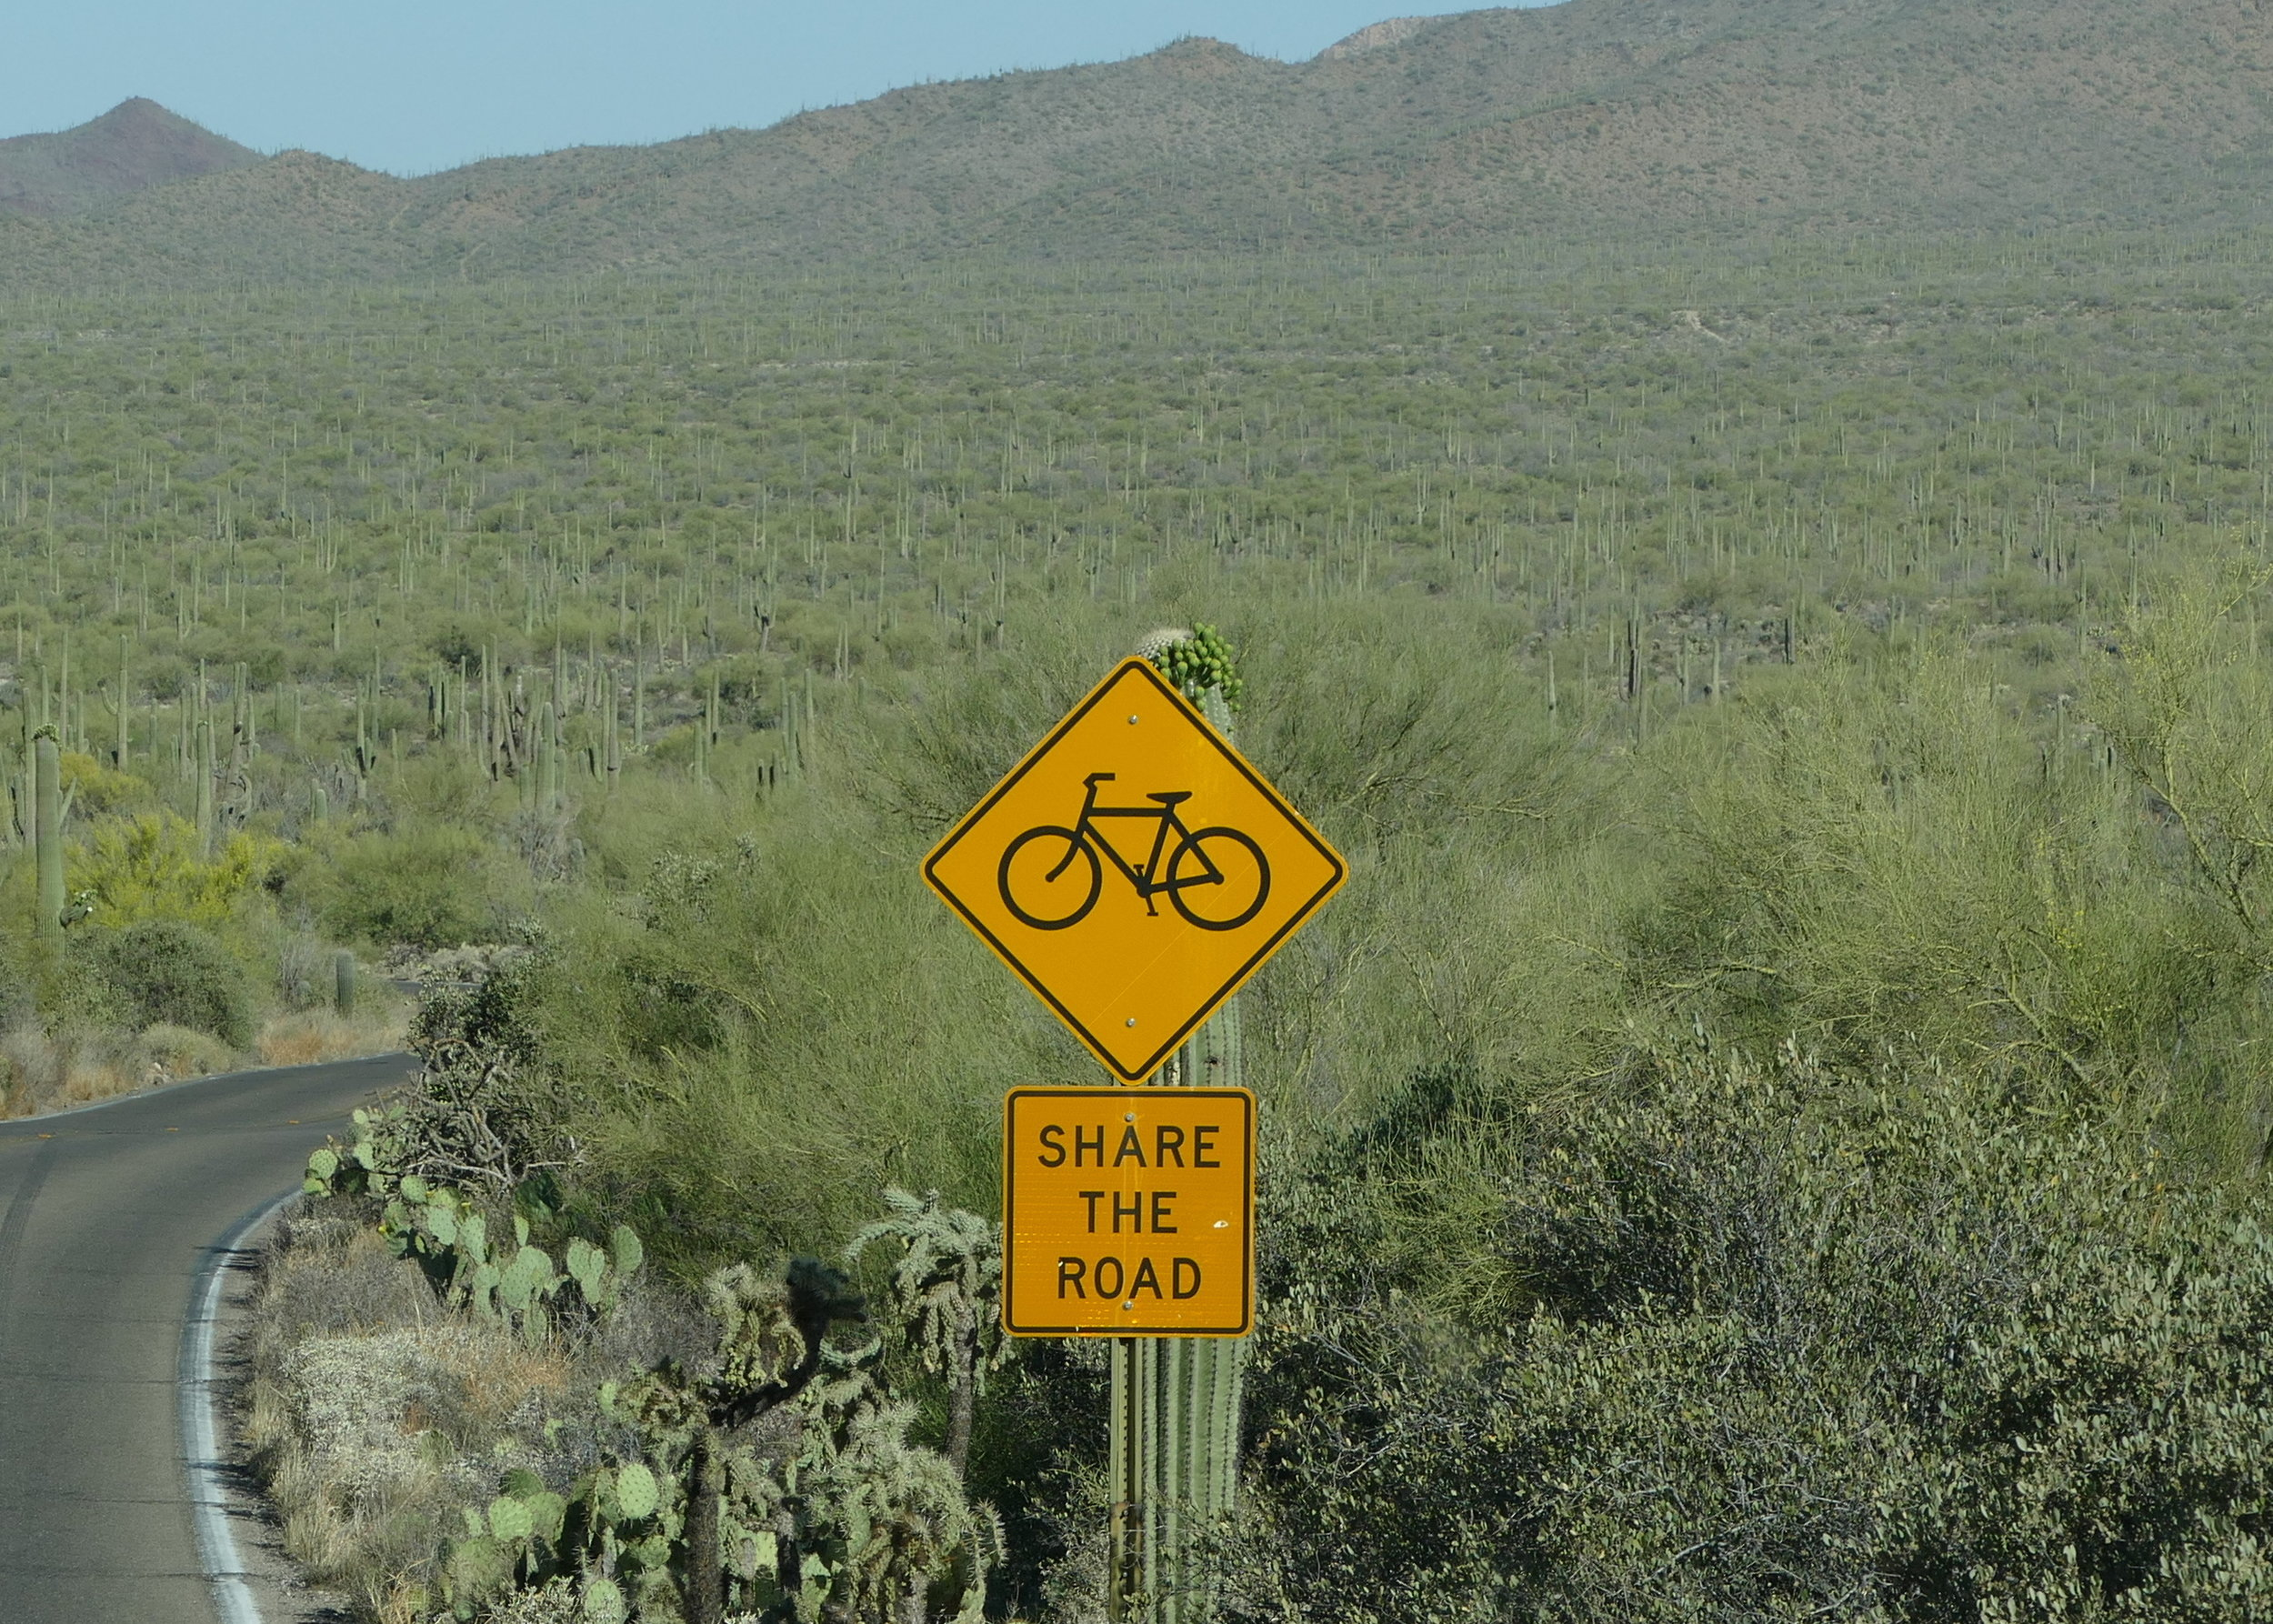 tucson-bike sign.JPG